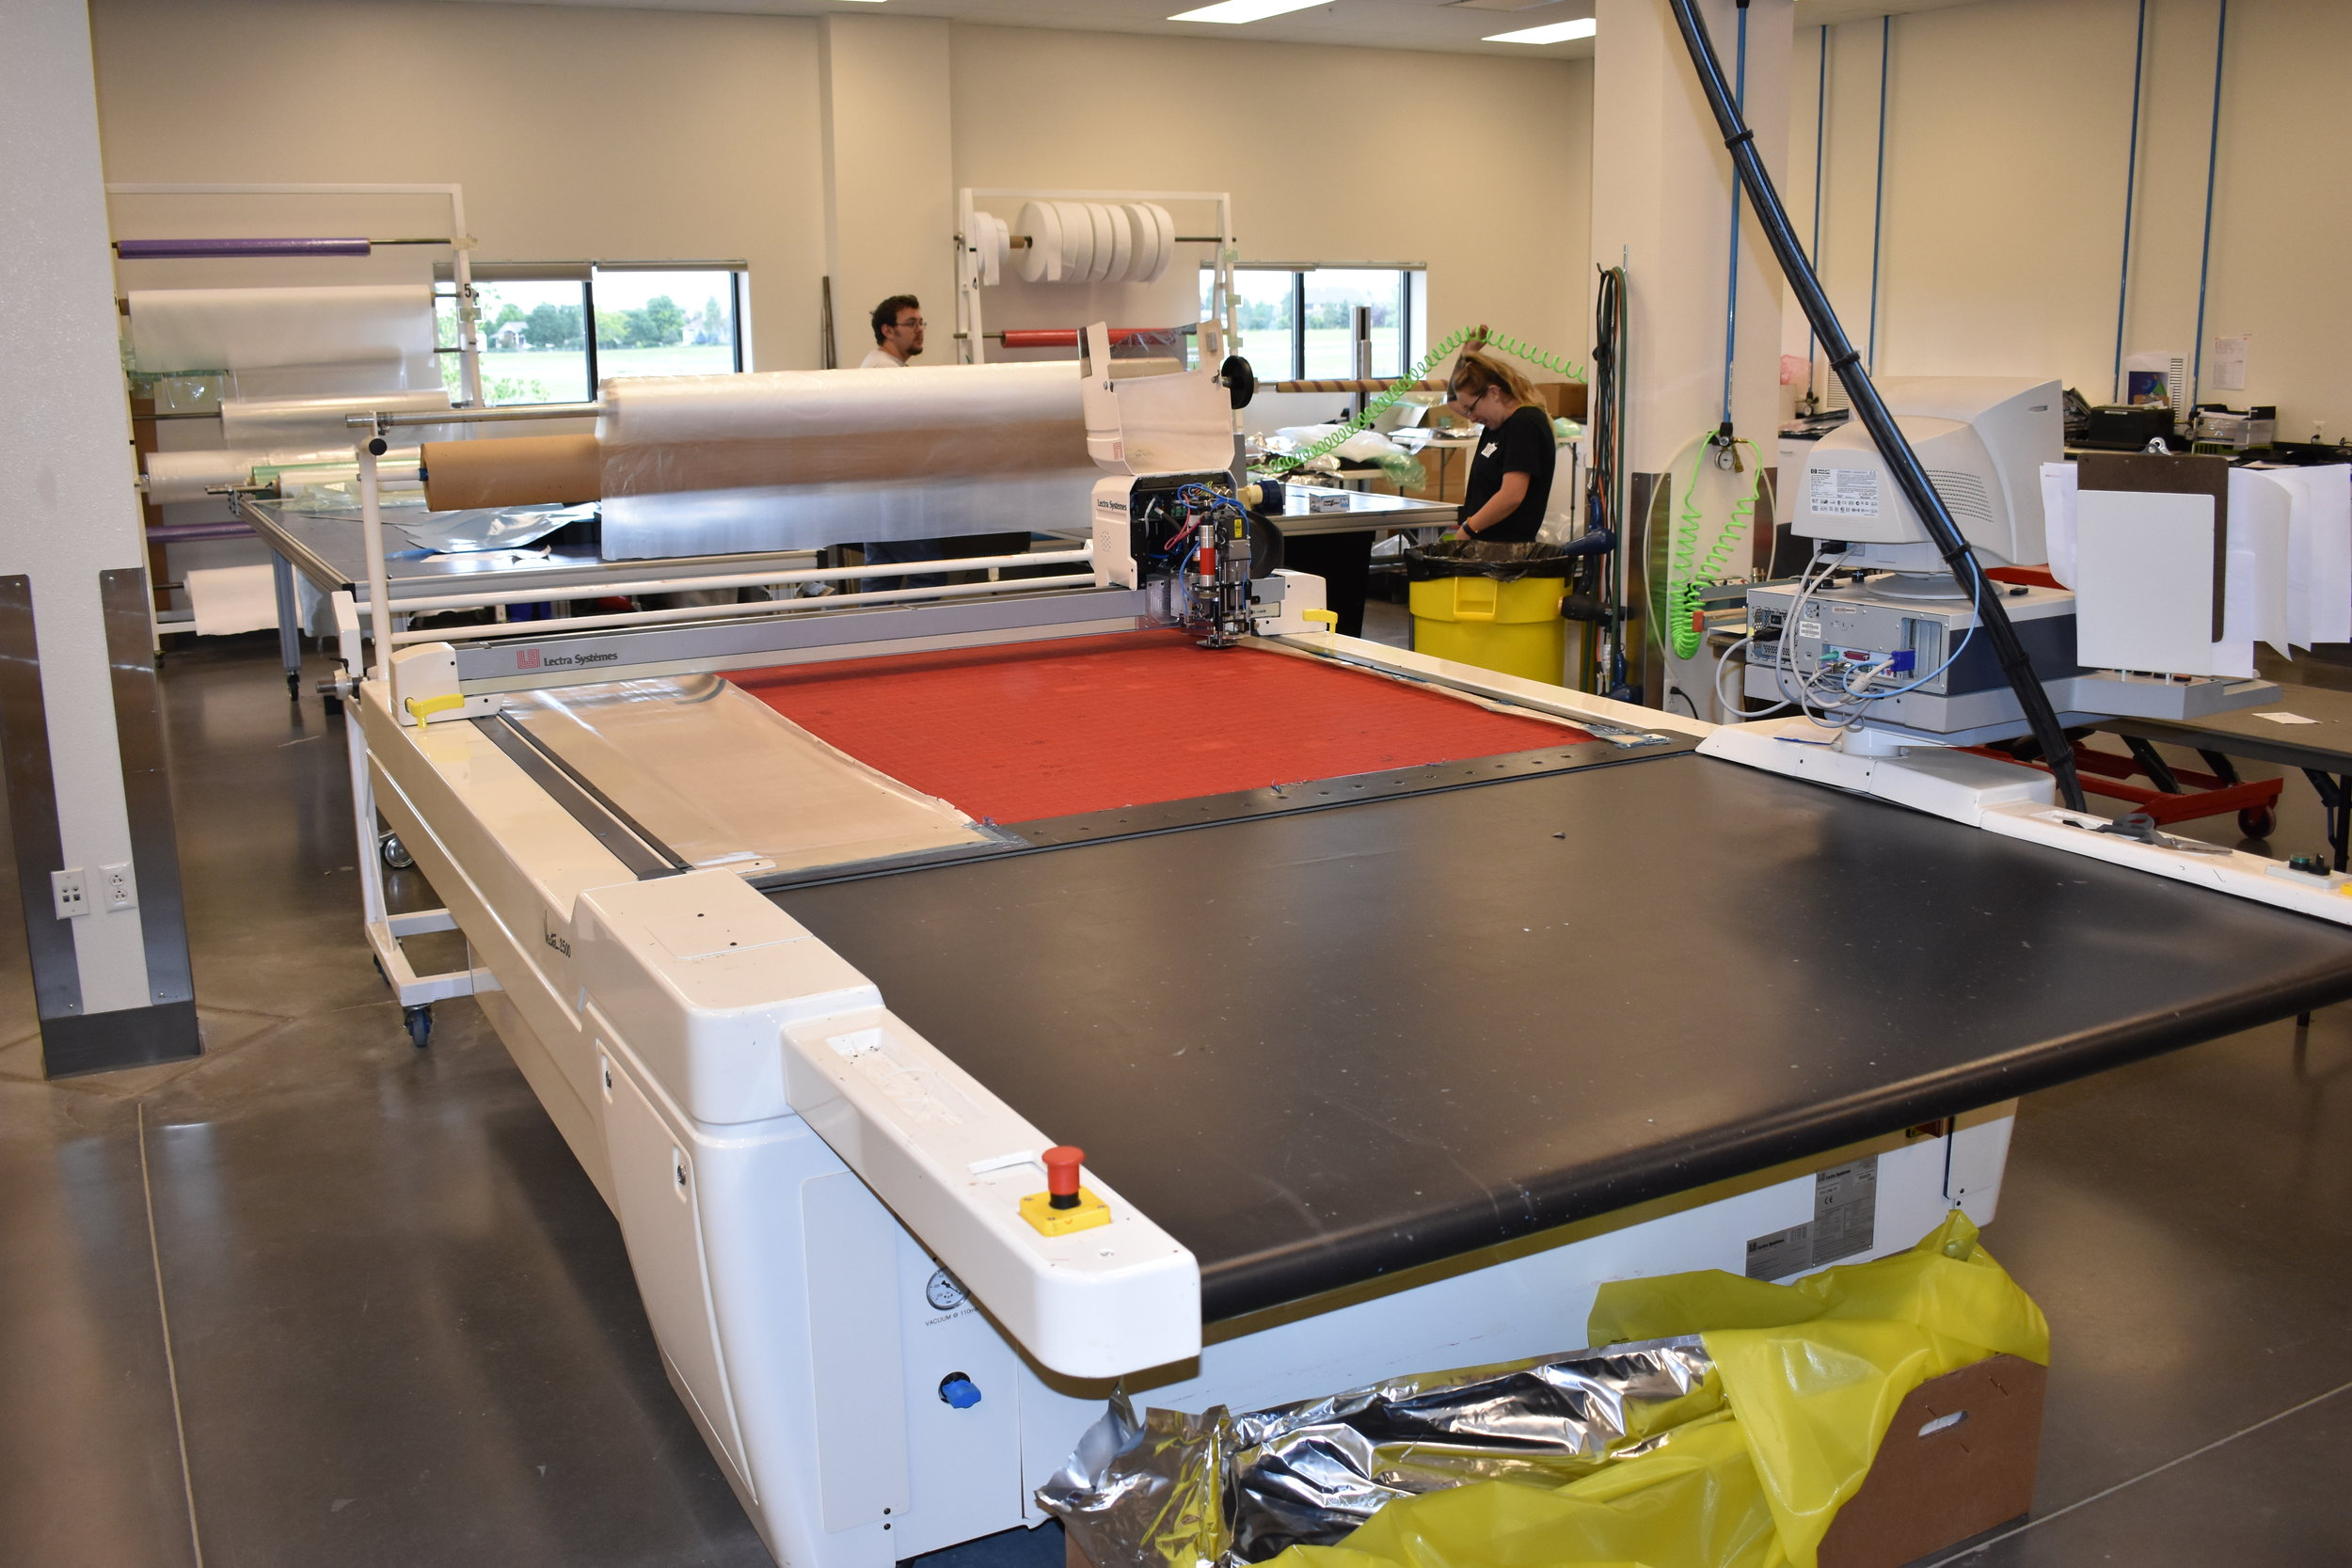 LECTRA   VECTOR 2500 - CNC cutting machine used for cutting prepreg composites for accurate layup of parts.